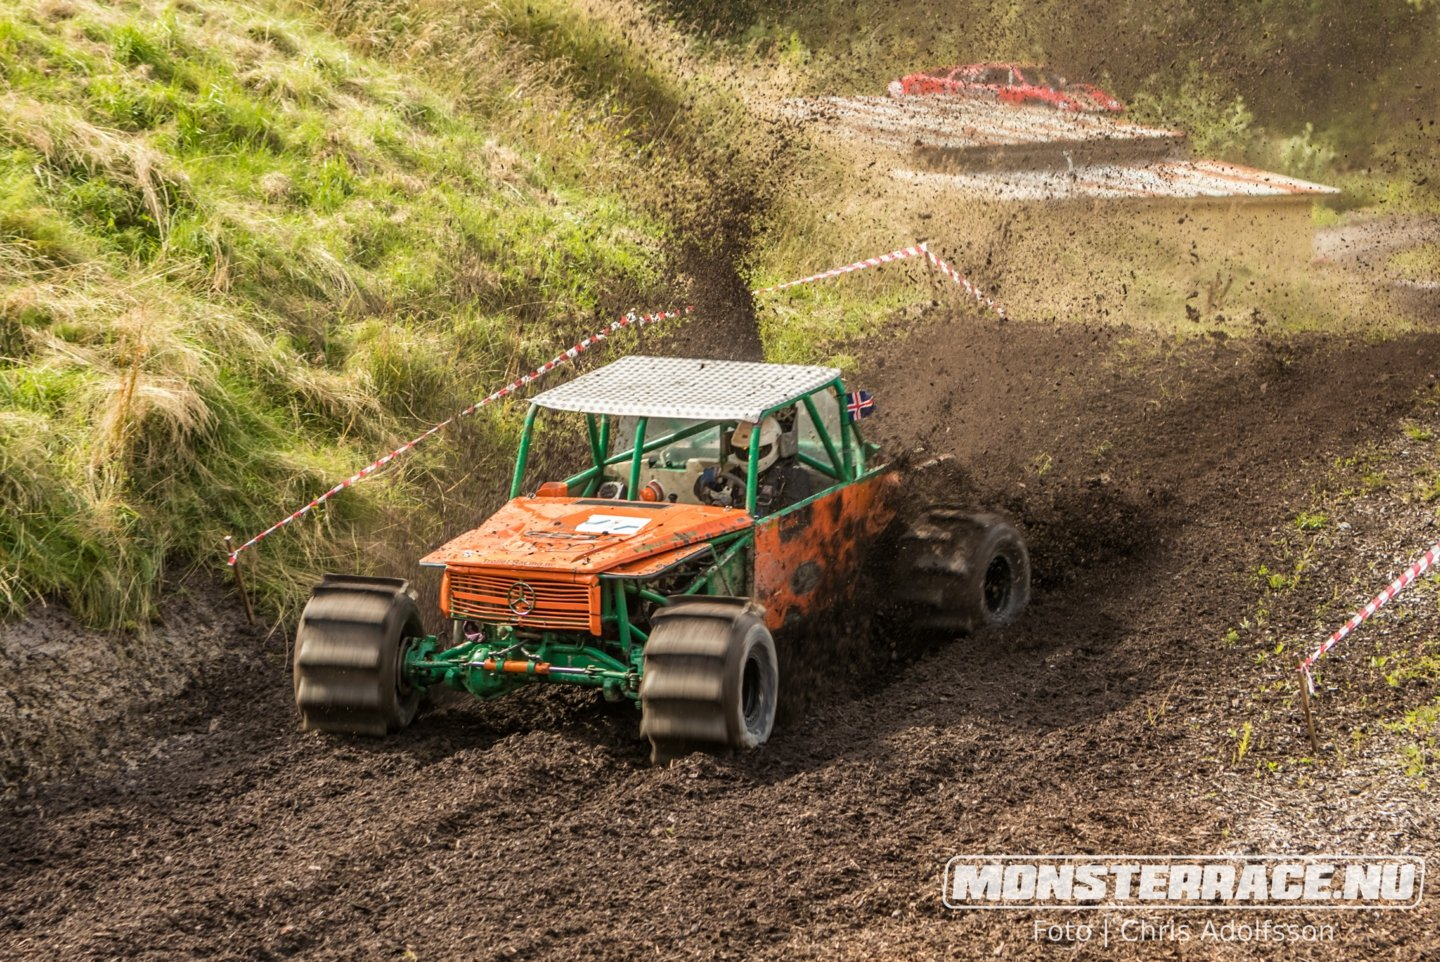 Monsterrace Ed dag 1 (123)